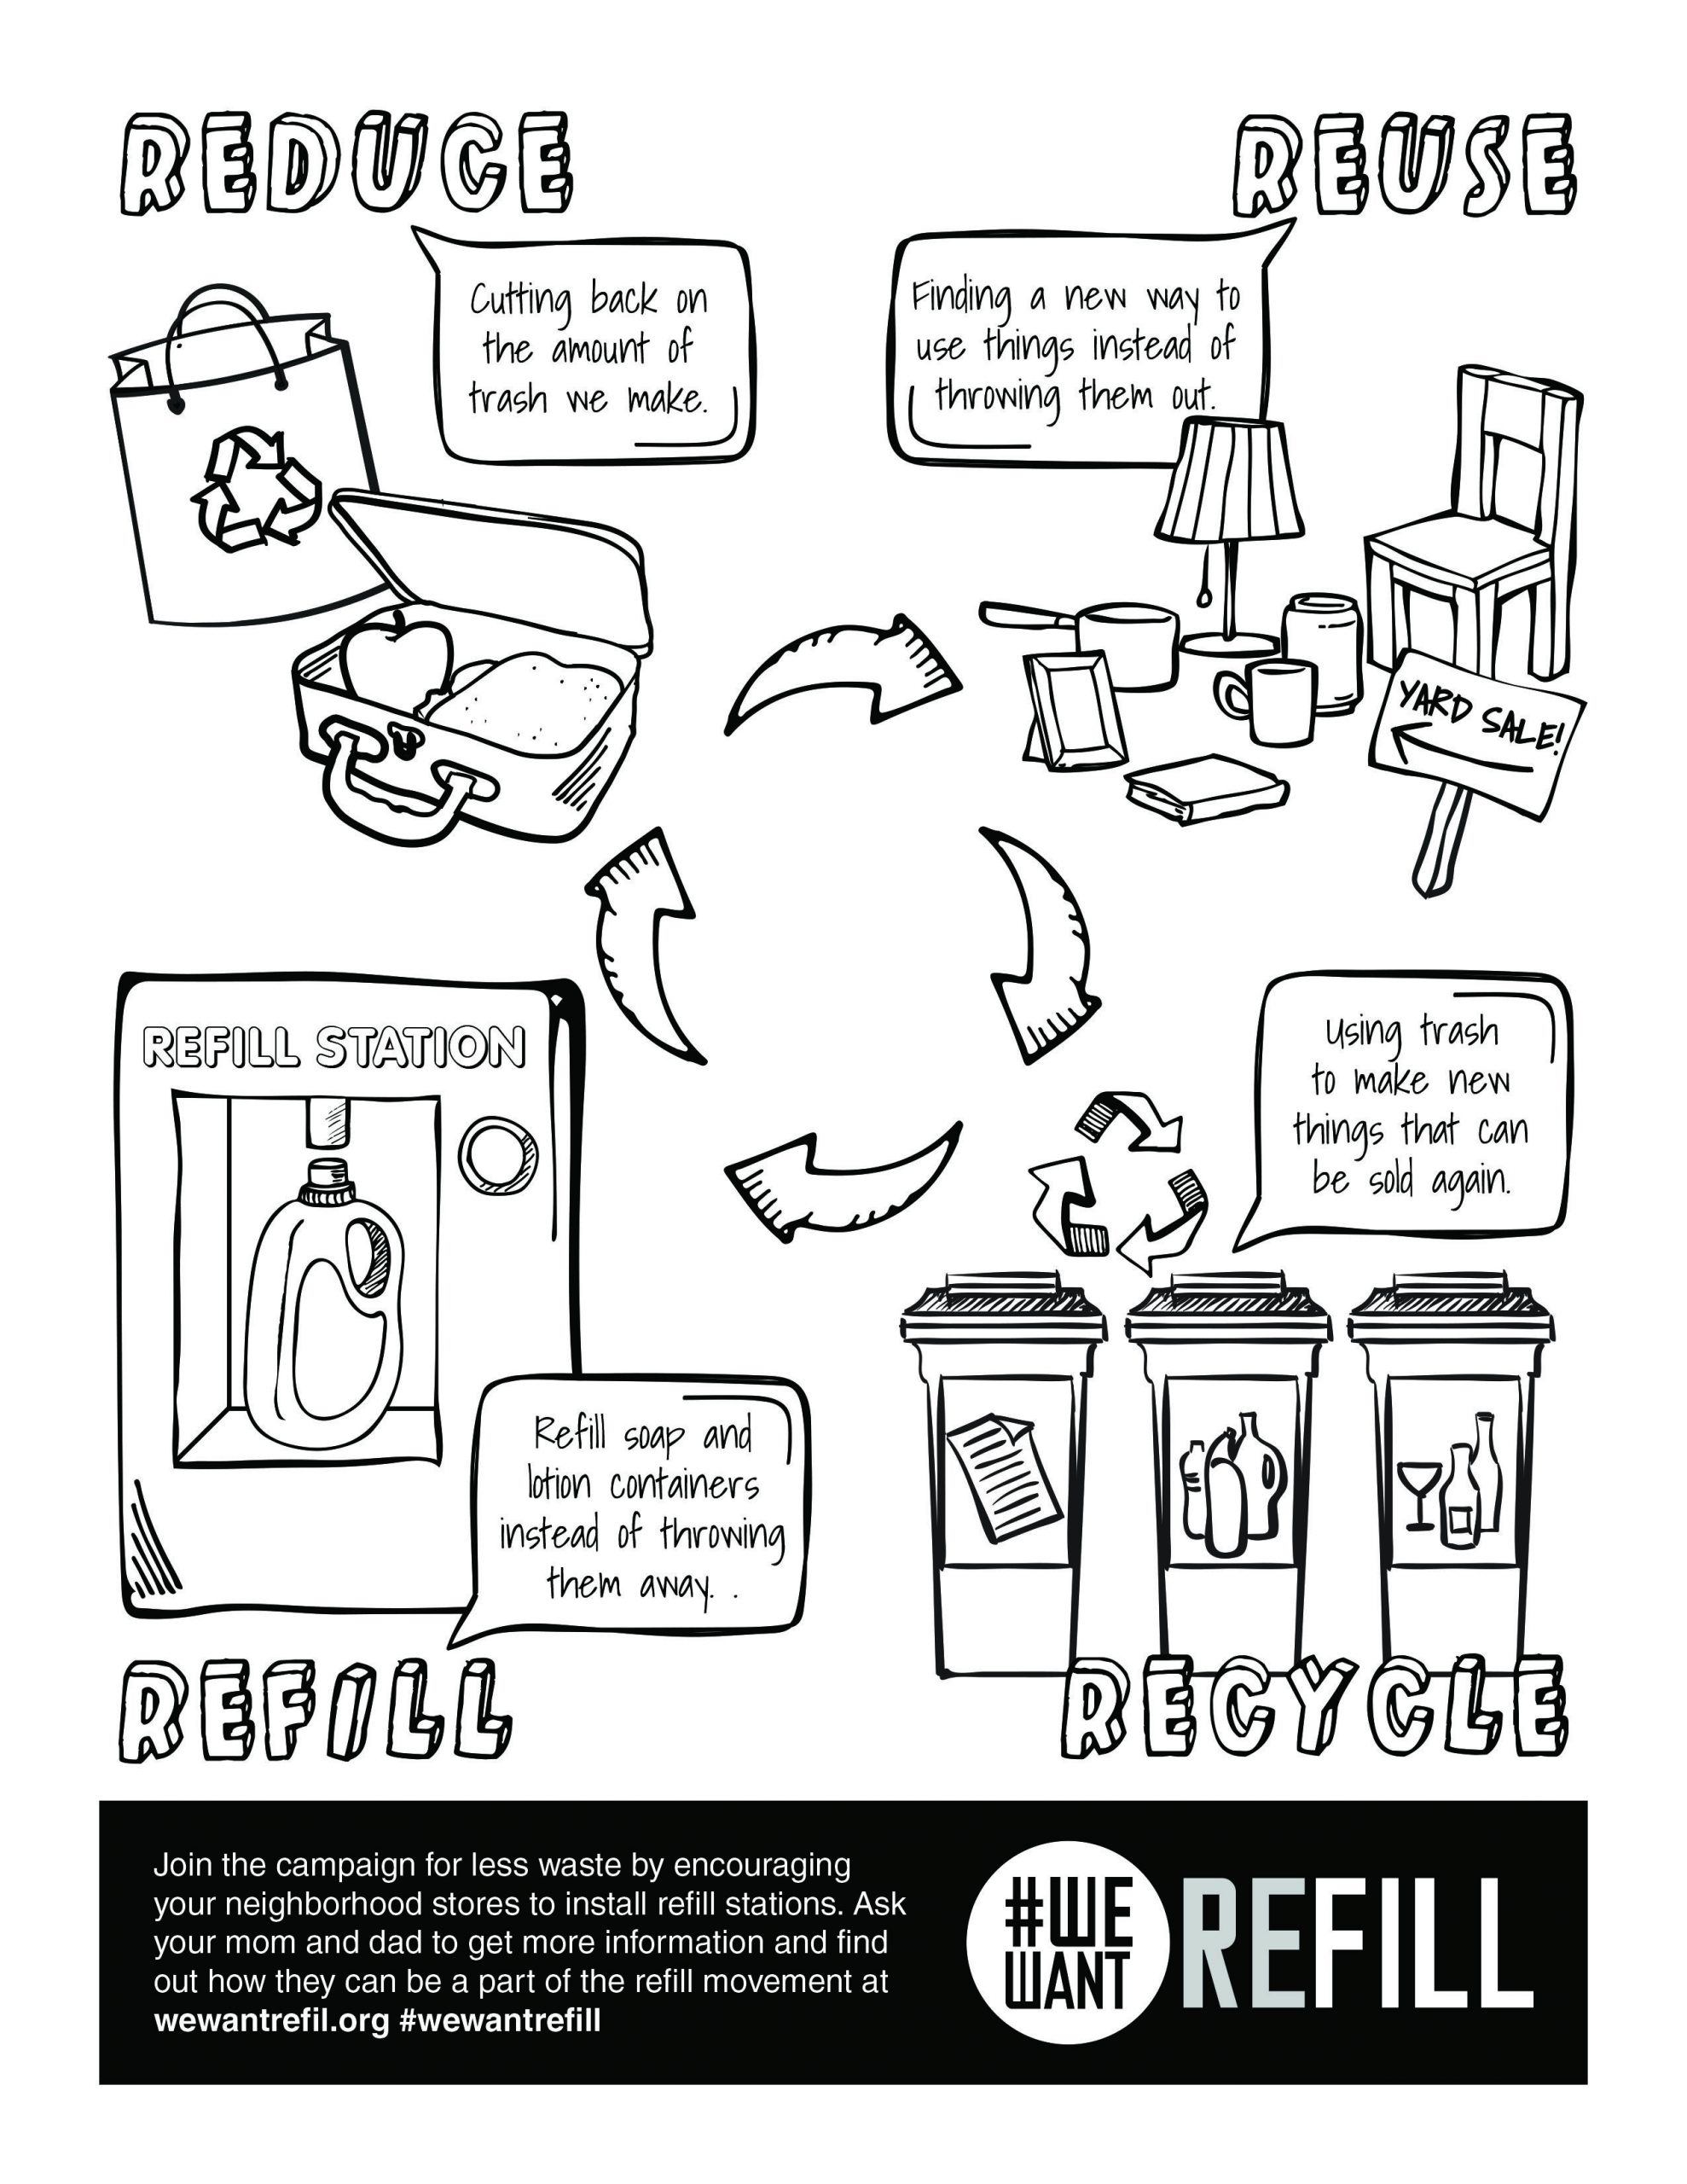 Reduce Reuse Recycle Worksheet Free Downloadable Coloring Page for Kids We Want Refill